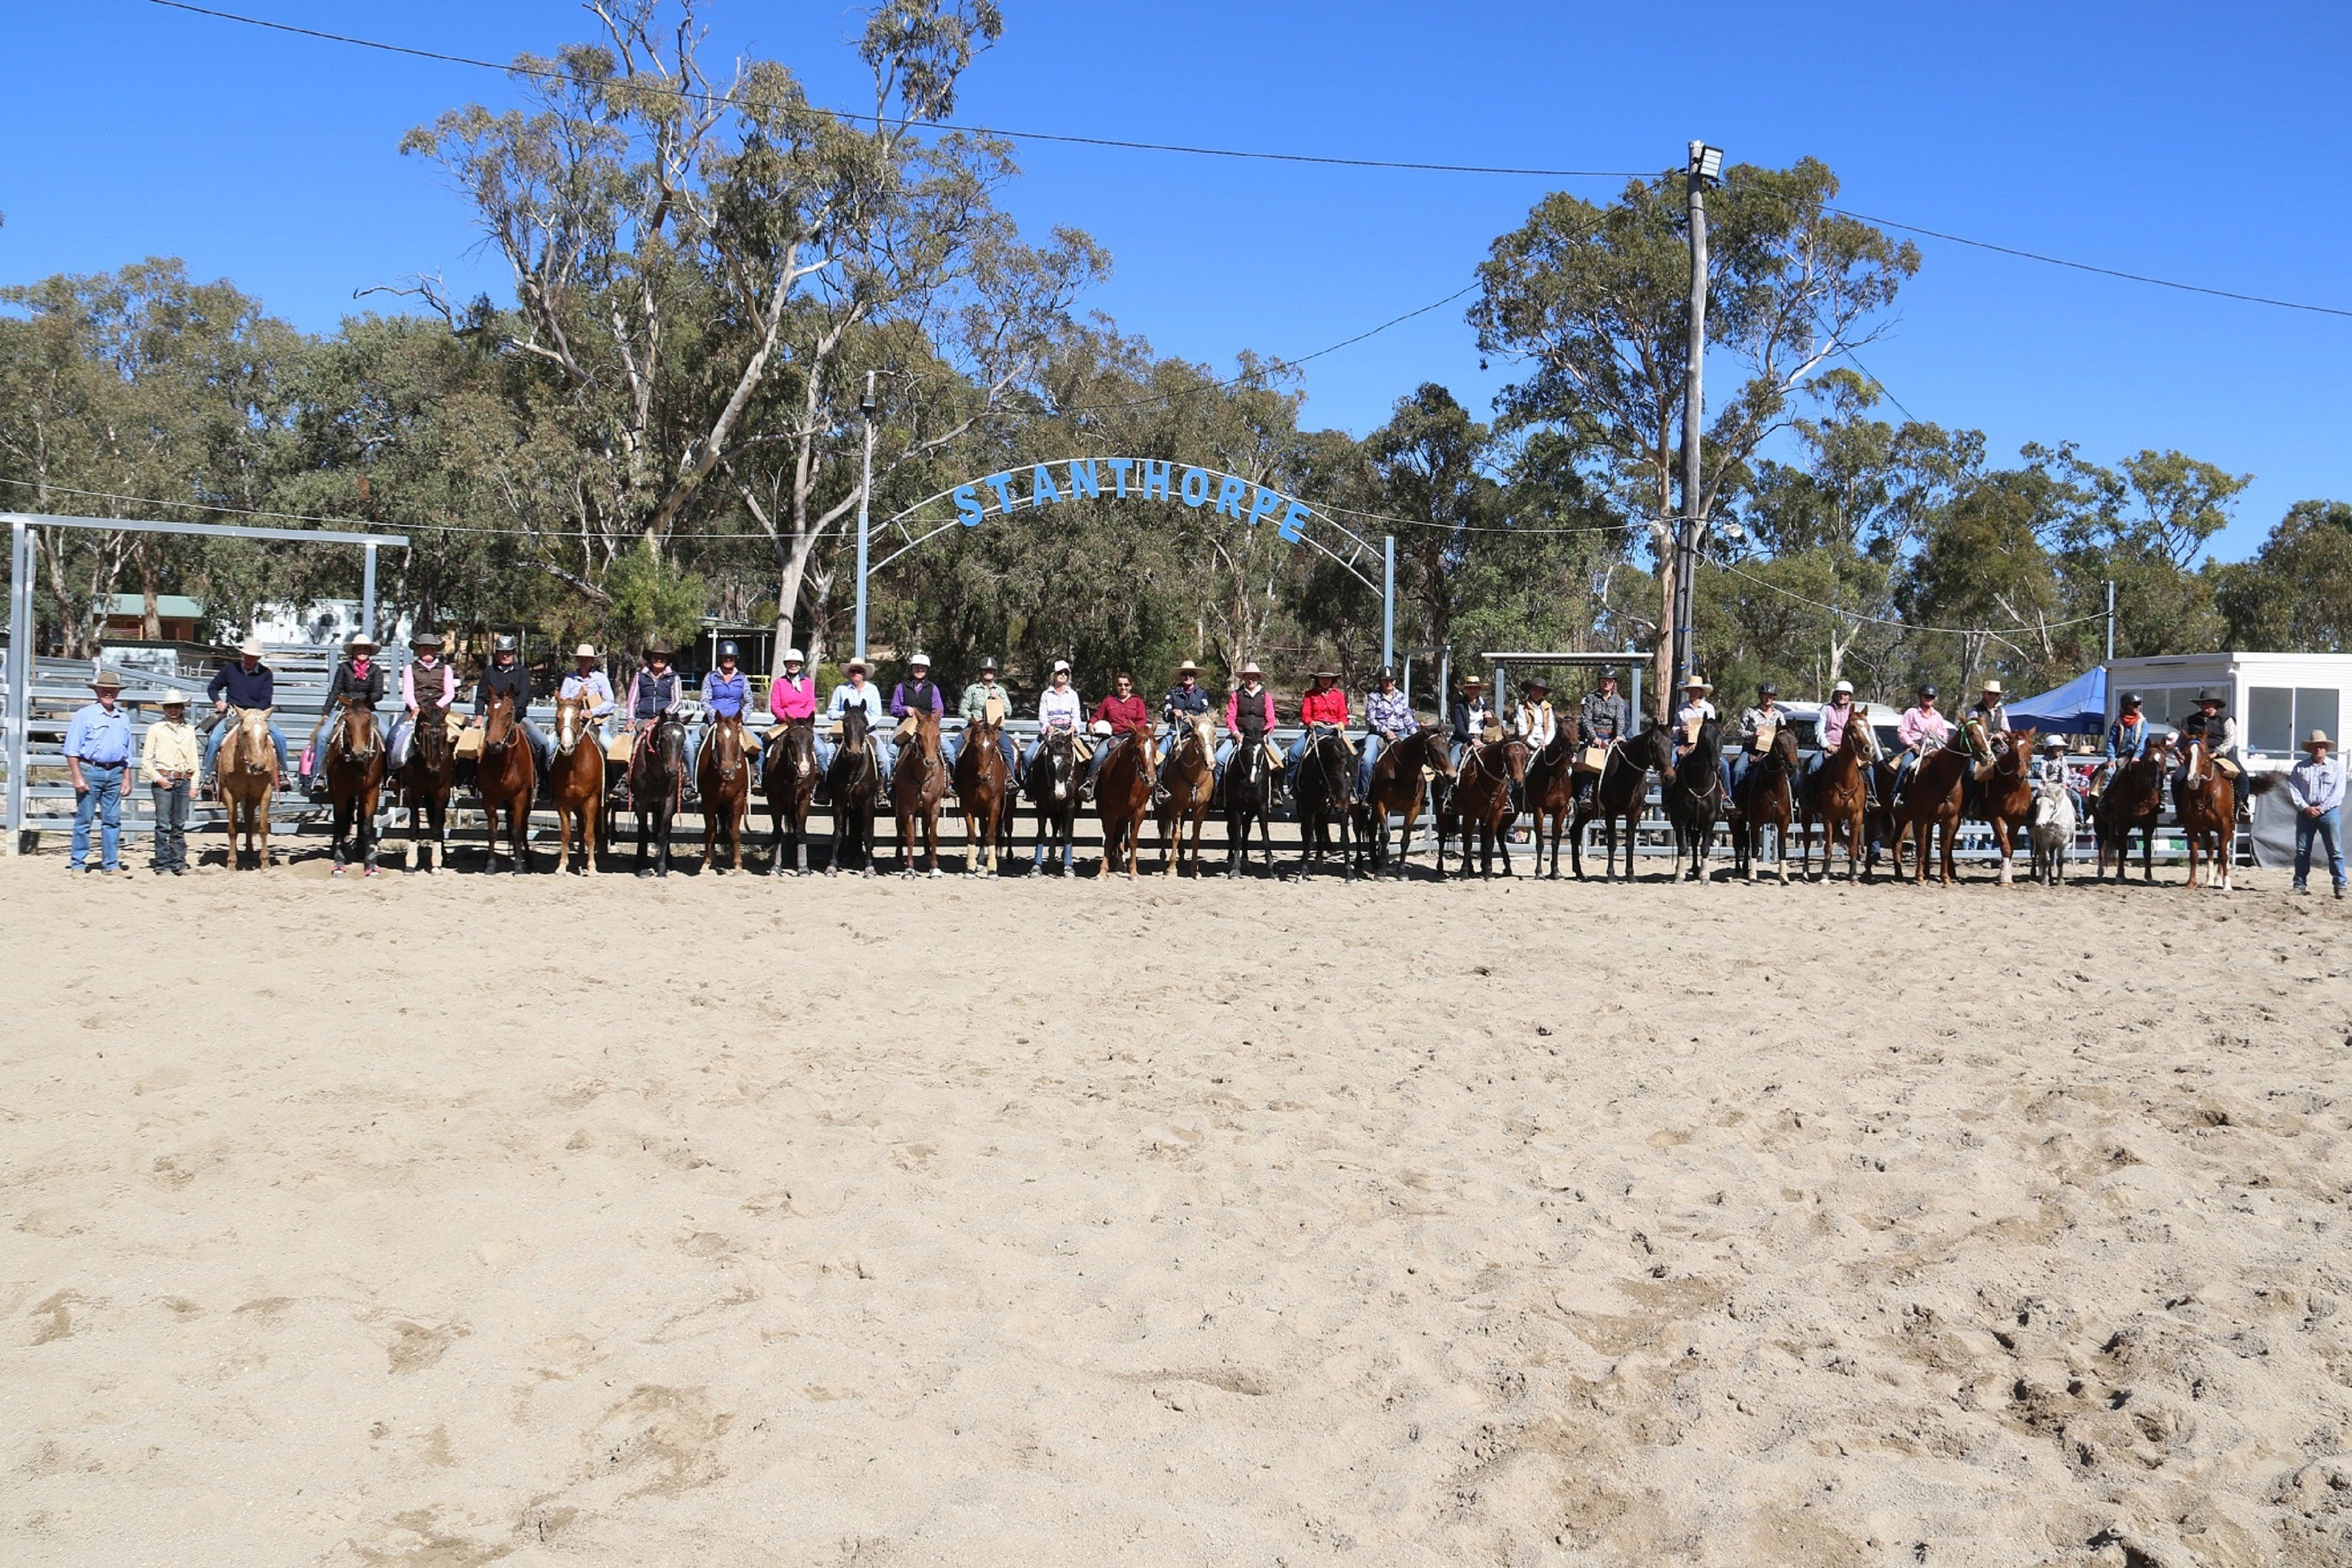 Australian Campdraft Association National Finals Campdraft 2021 - Palm Beach Accommodation